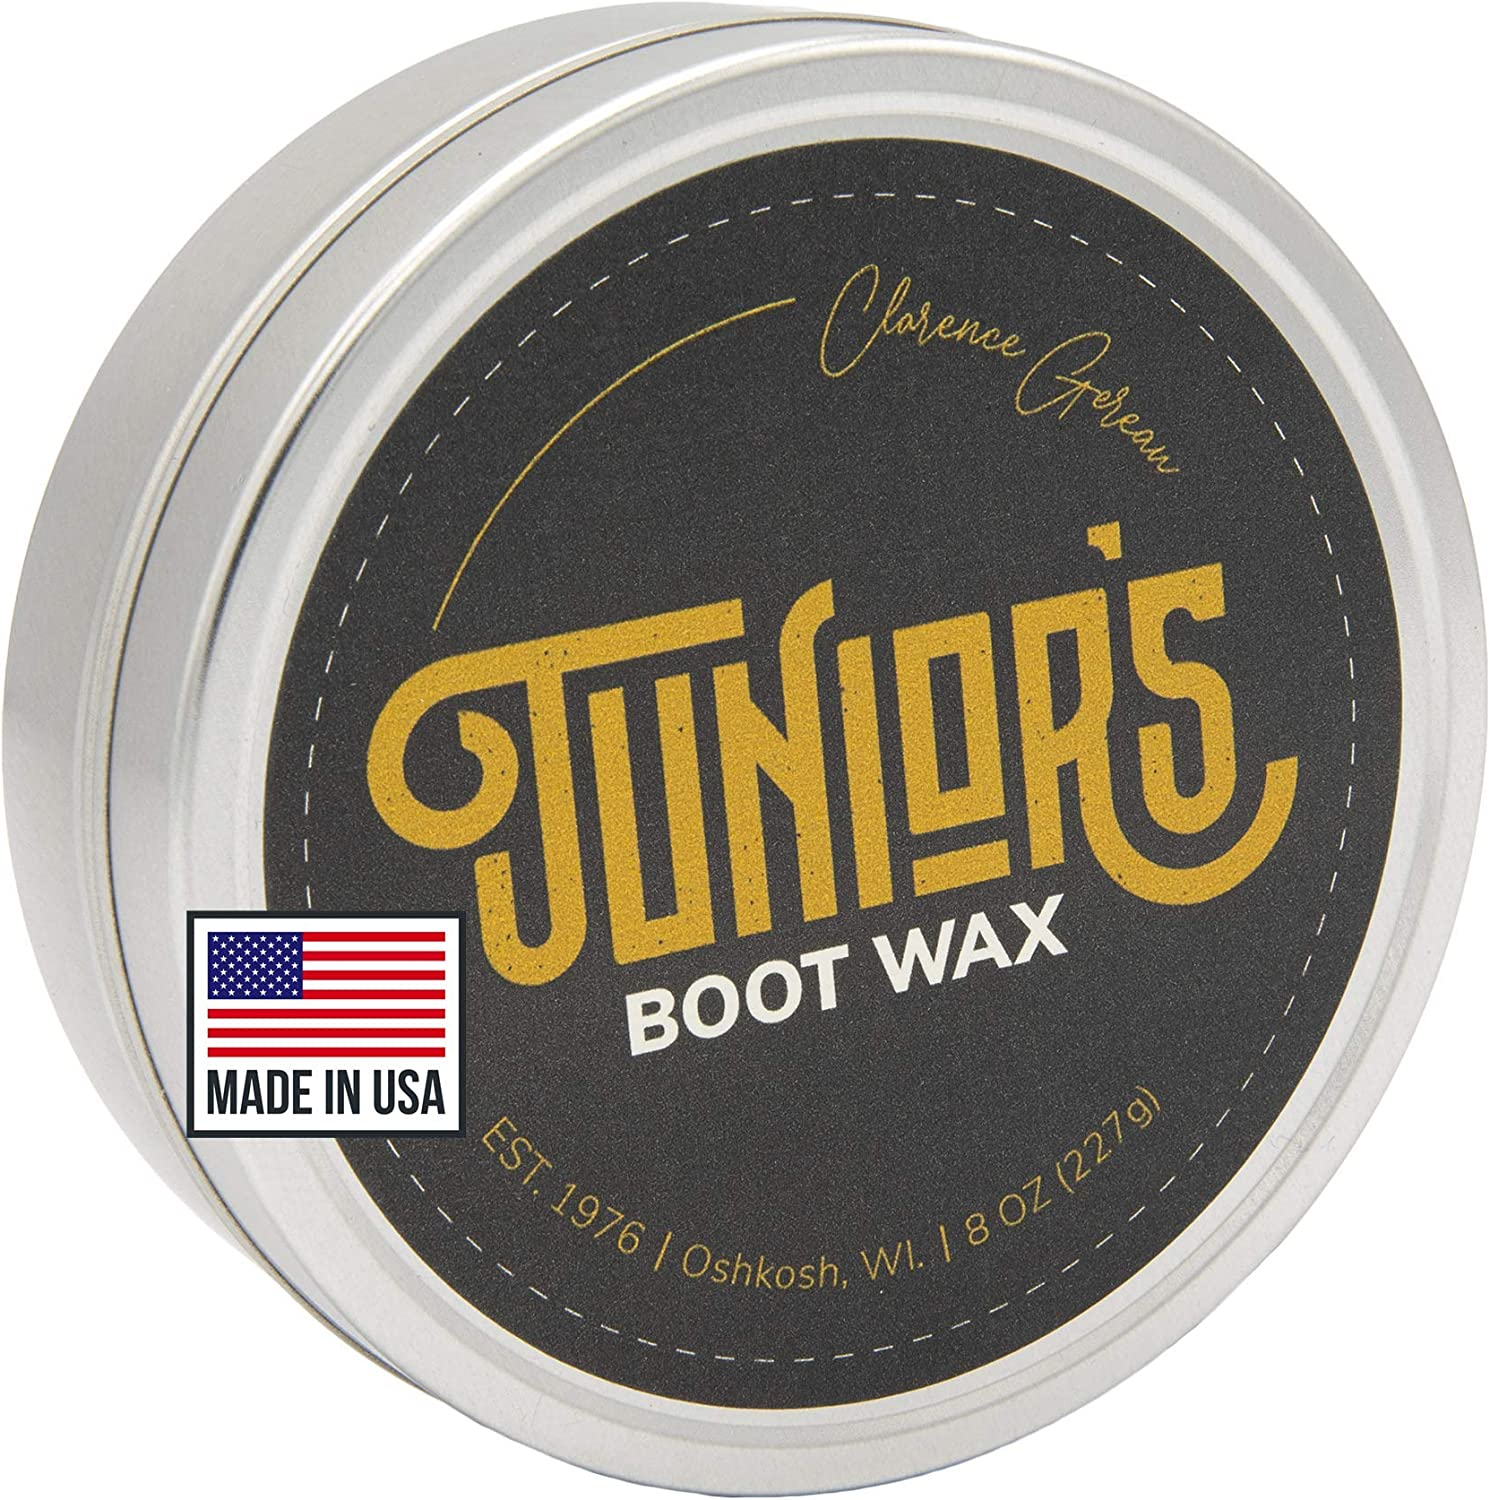 Blended Waxes, Inc, Junior's Boot and Leather Care Wax | Boot and Shoe Weatherproofing Protectant Wax | Waterproof Wax: Shoes